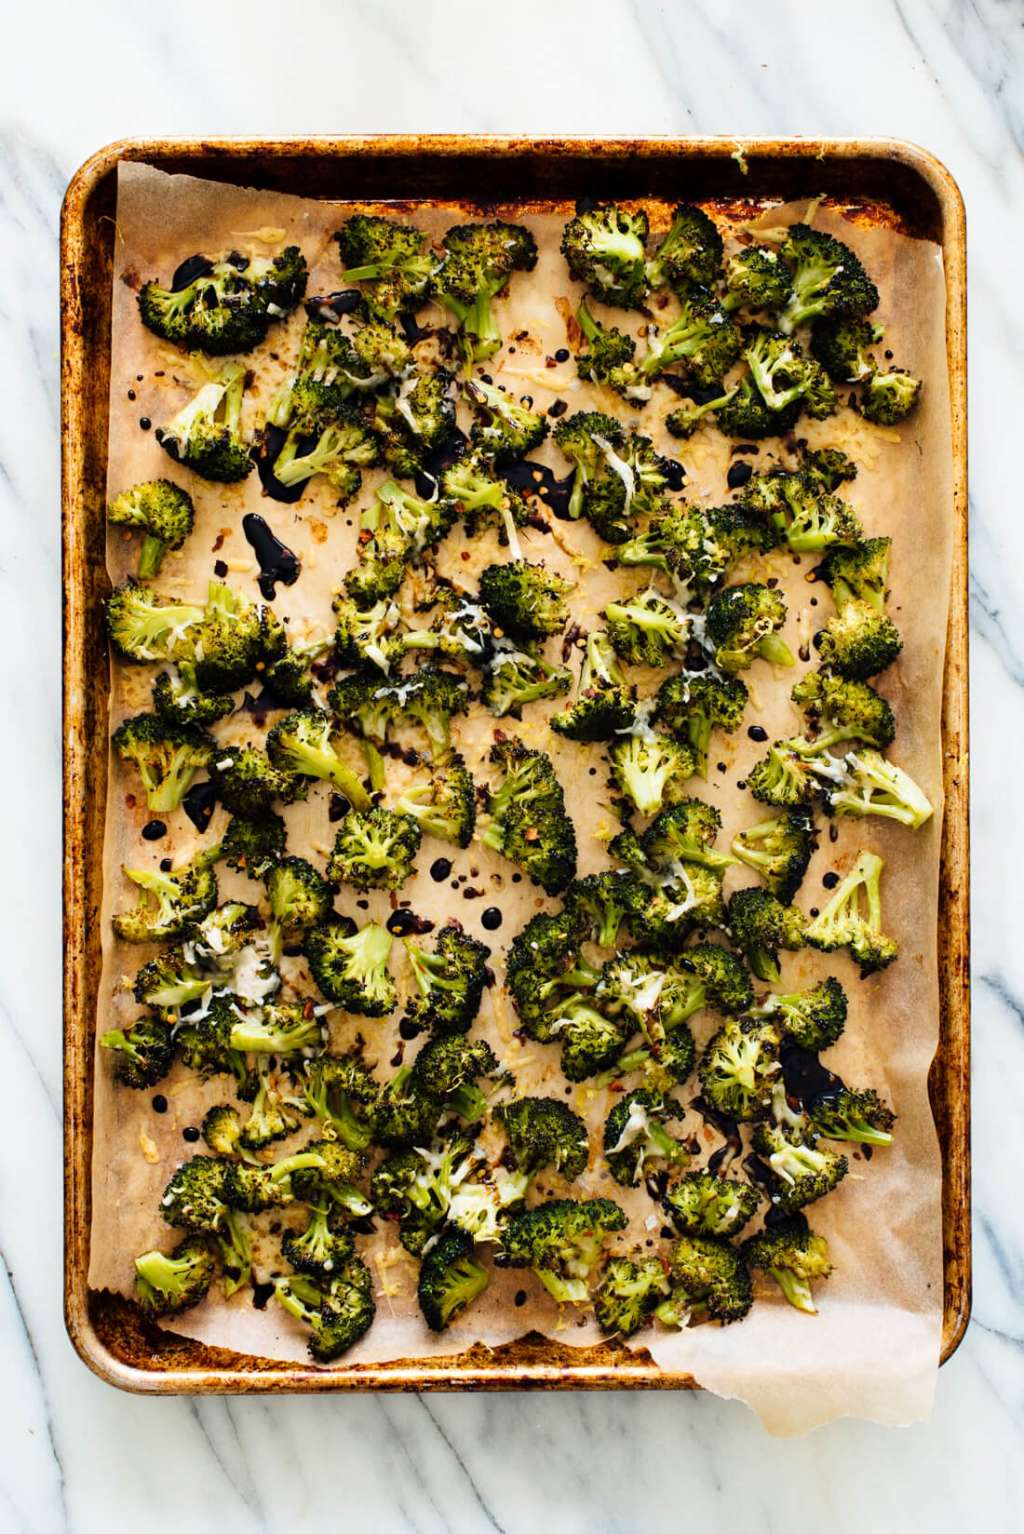 Make Parmesan Roasted Broccoli with Balsamic Drizzle Tonight